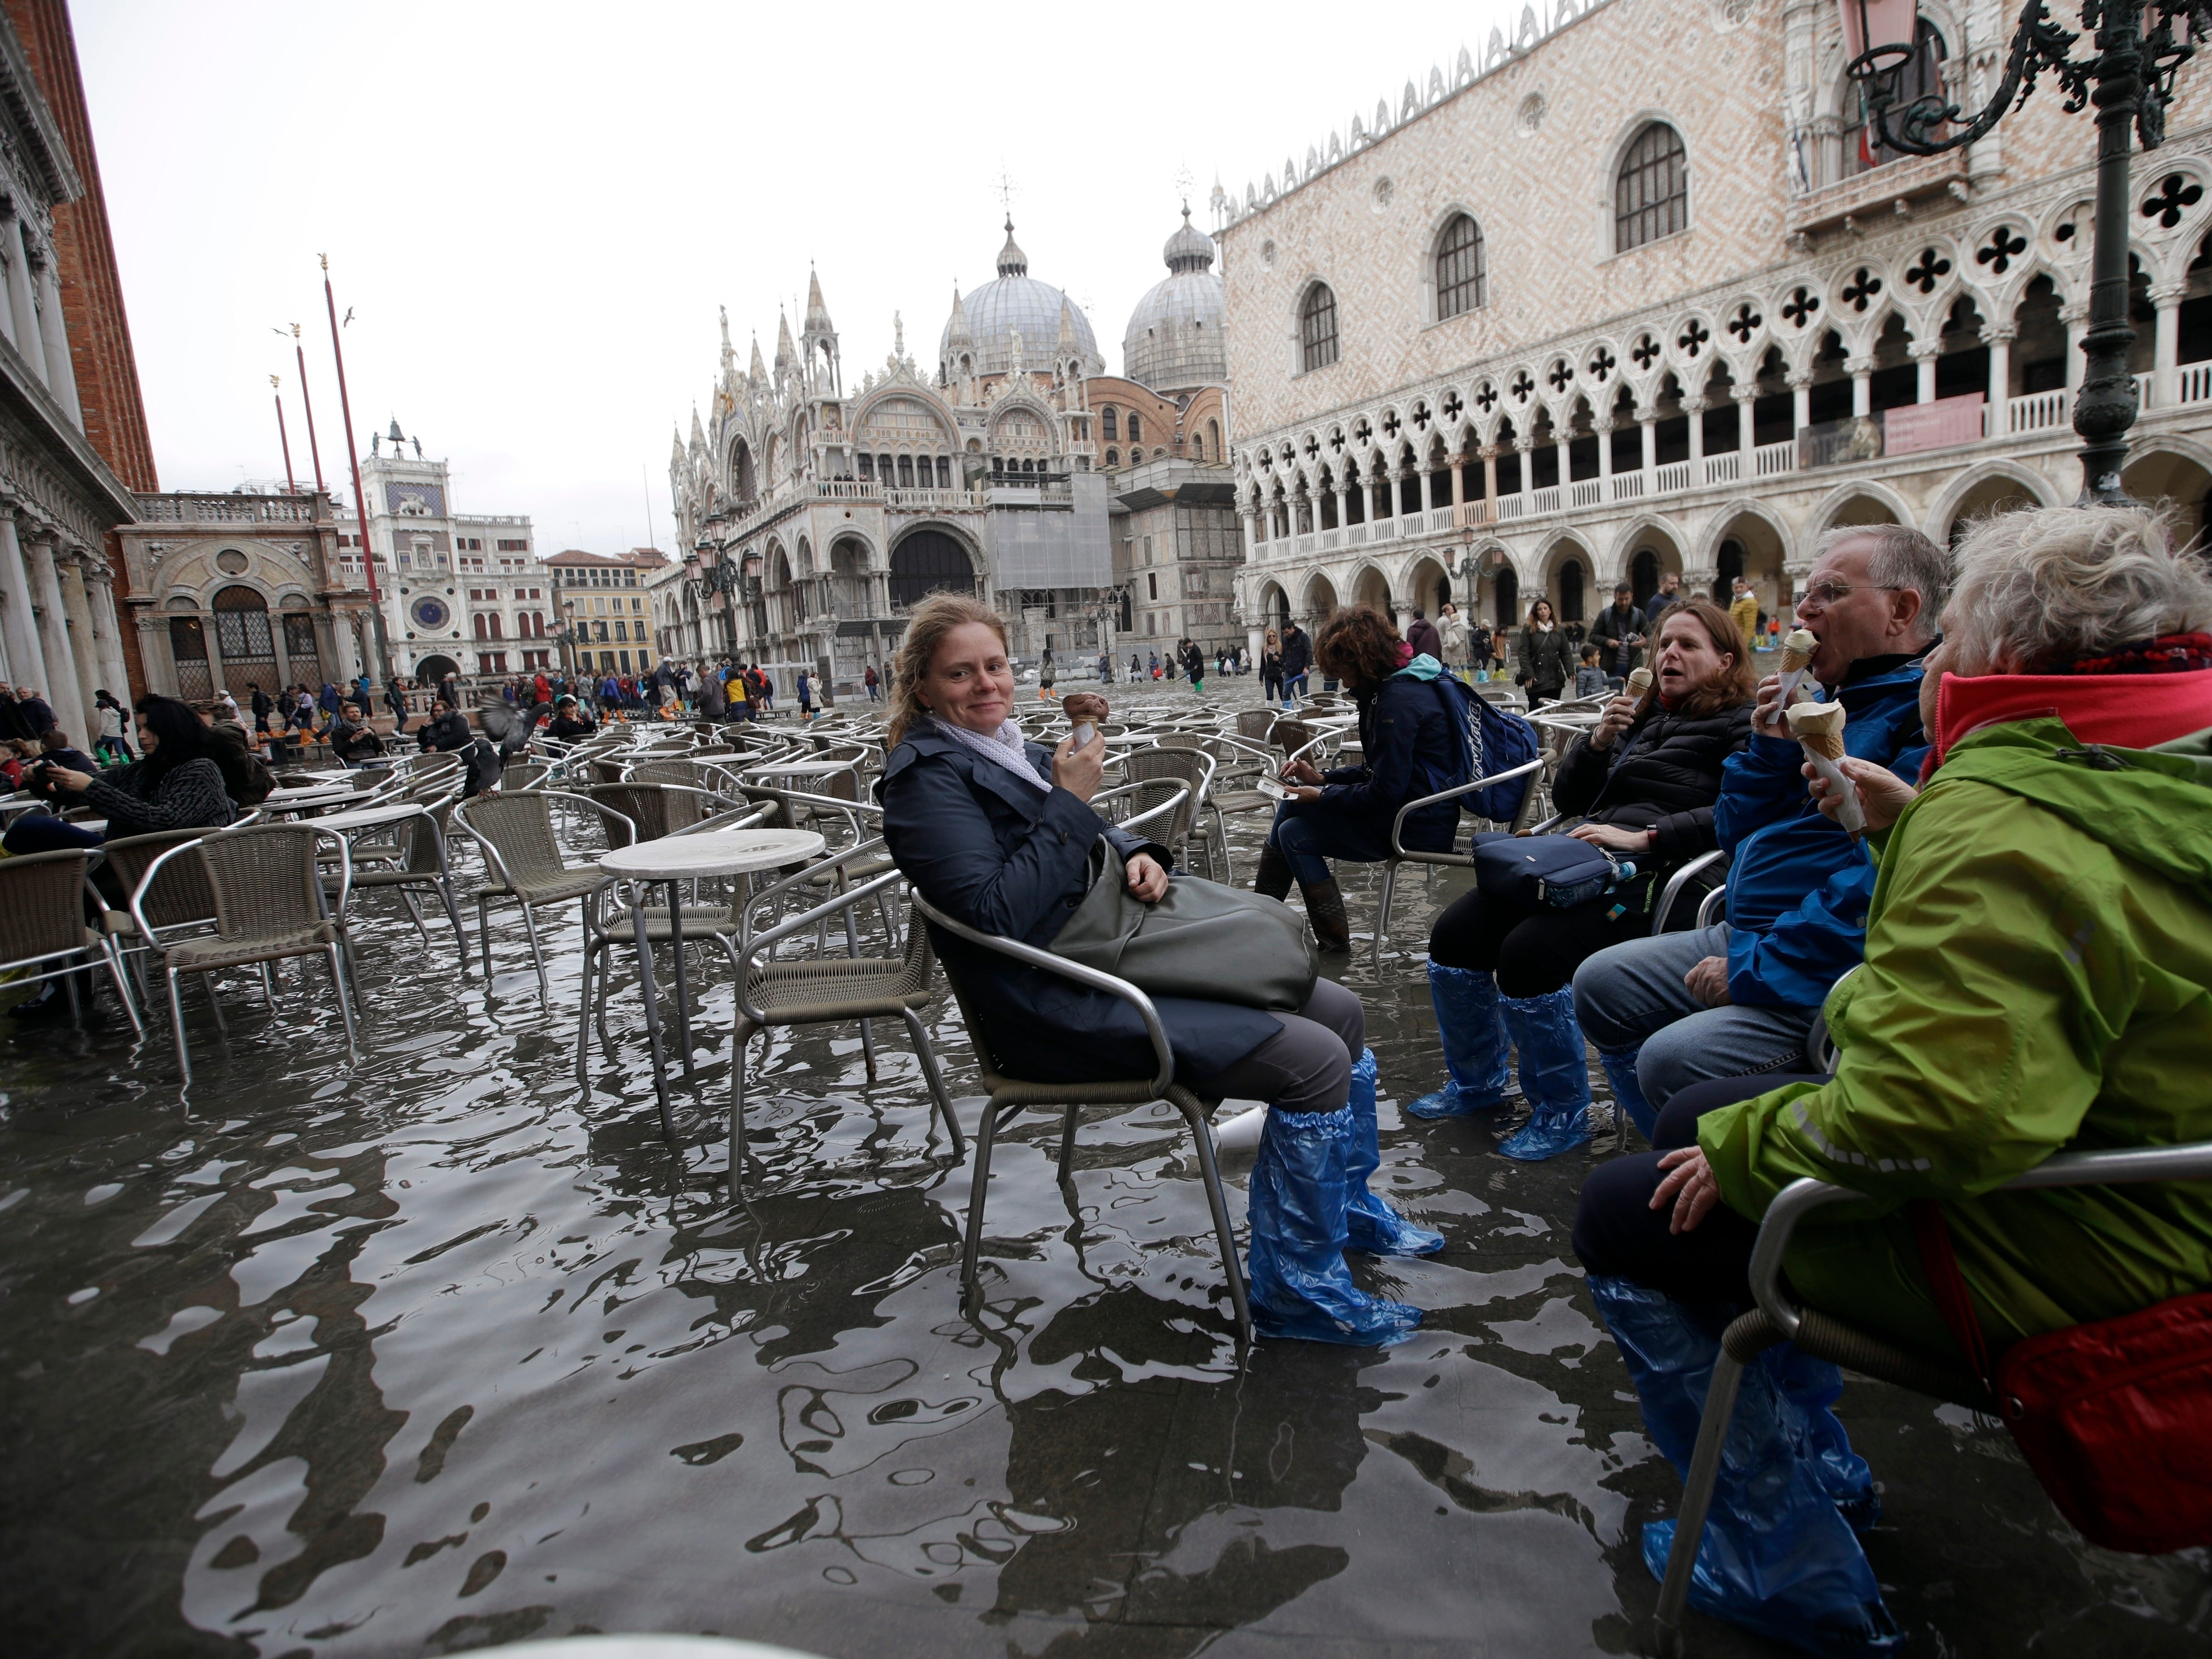 Tourists enjoy an ice cream as they sit in the flooded St. Mark's Square in Venice, Italy, Thursday, Nov. 1, 2018, as rainstorms and strong winds have been battering the country. Two people were killed when a falling tree crushed their car in the mountainous countryside in northwestern Italy, as rainstorms and strong winds continued to pummel much of the country.